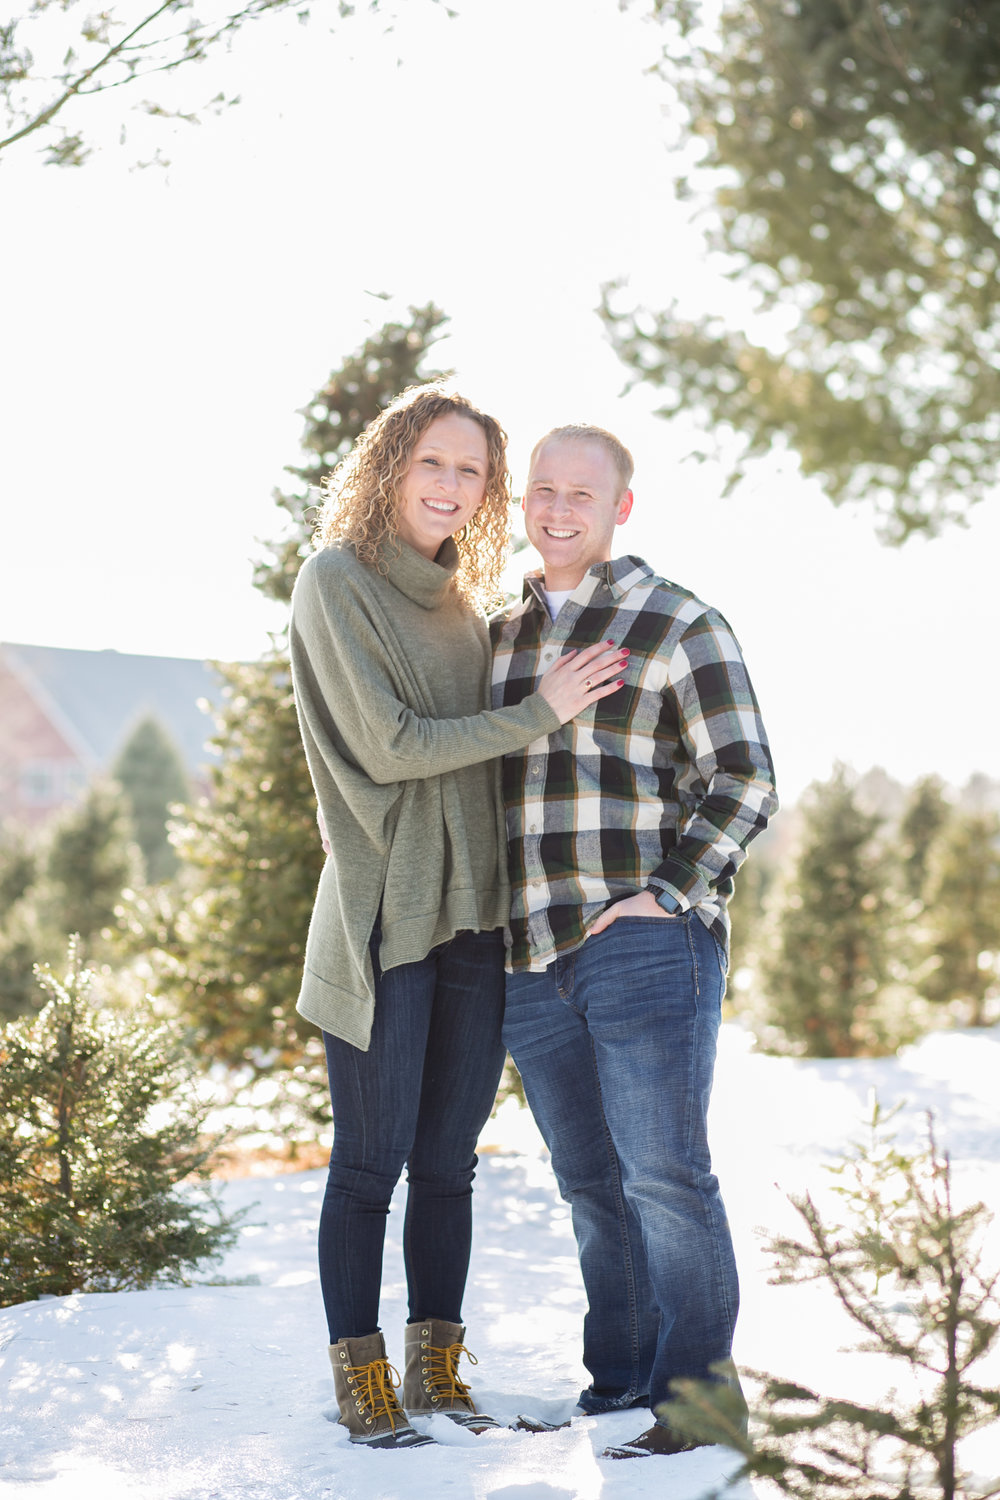 Winter Engagement Photography by Chelsea Bolling Minnesota Wedding Photographer (5 of 19).jpg